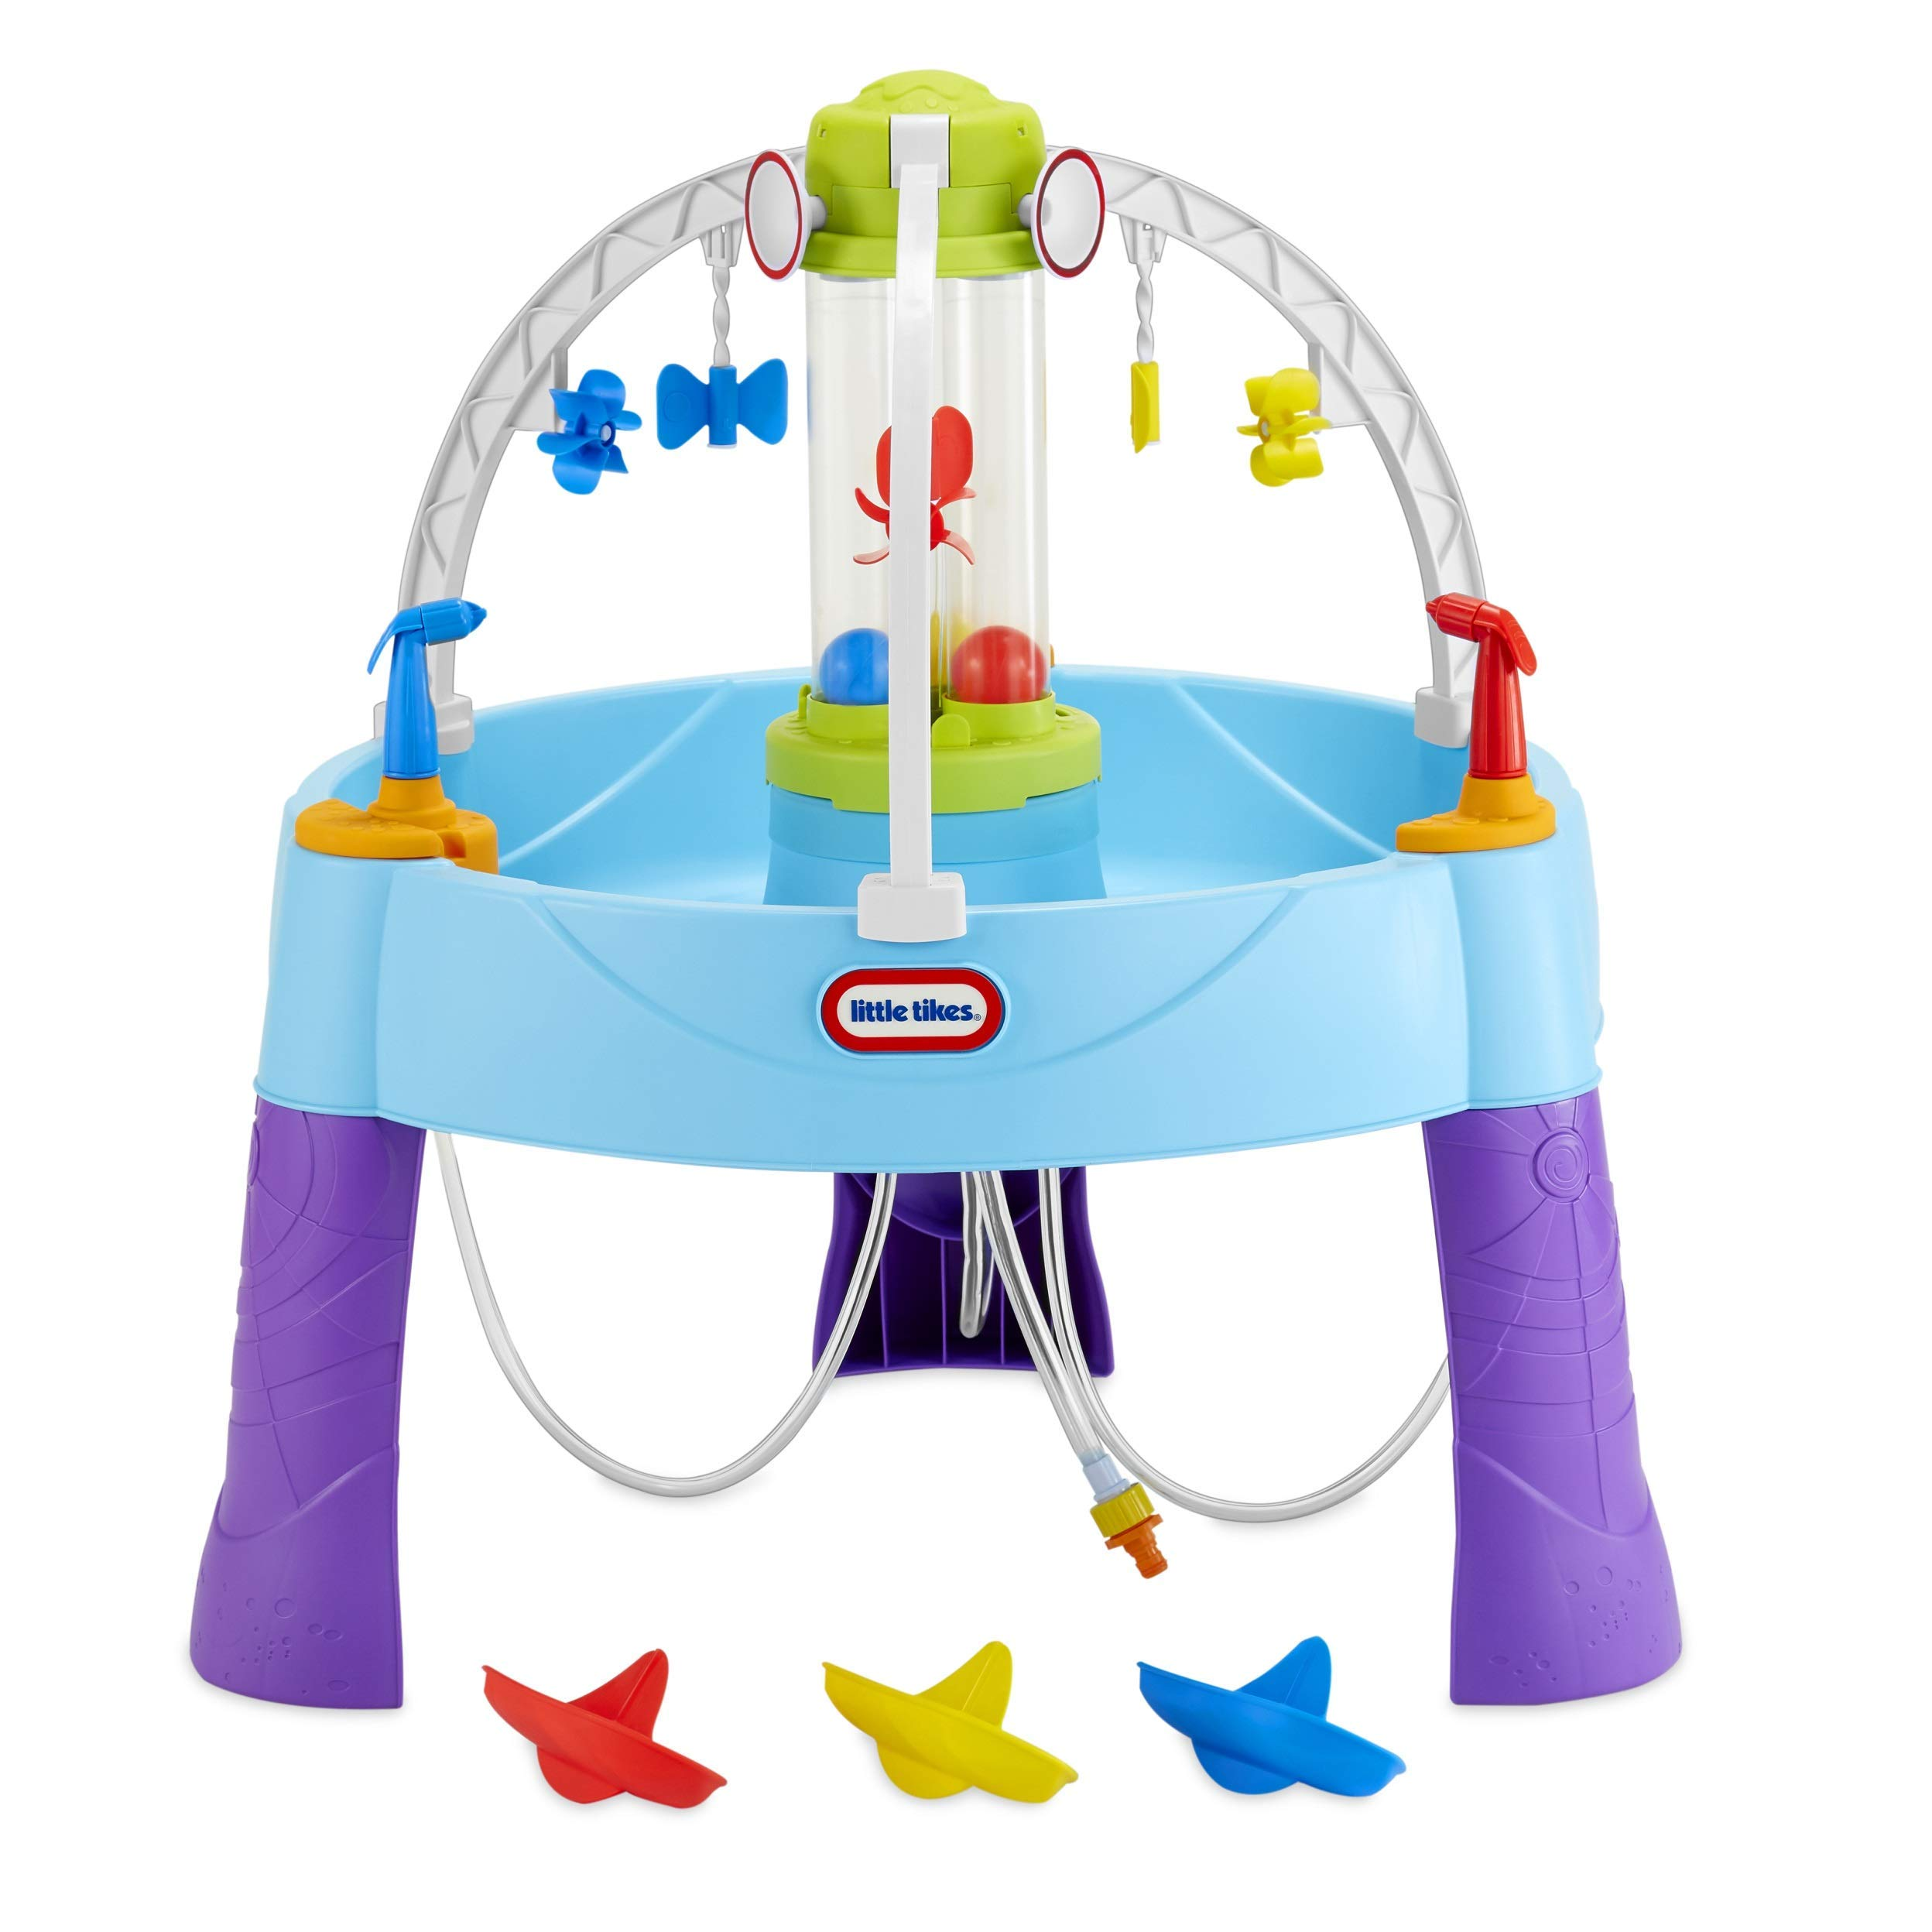 Little Tikes Fun Zone Battle Splash Water Play Table Game for Kids (Renewed) by Little Tikes